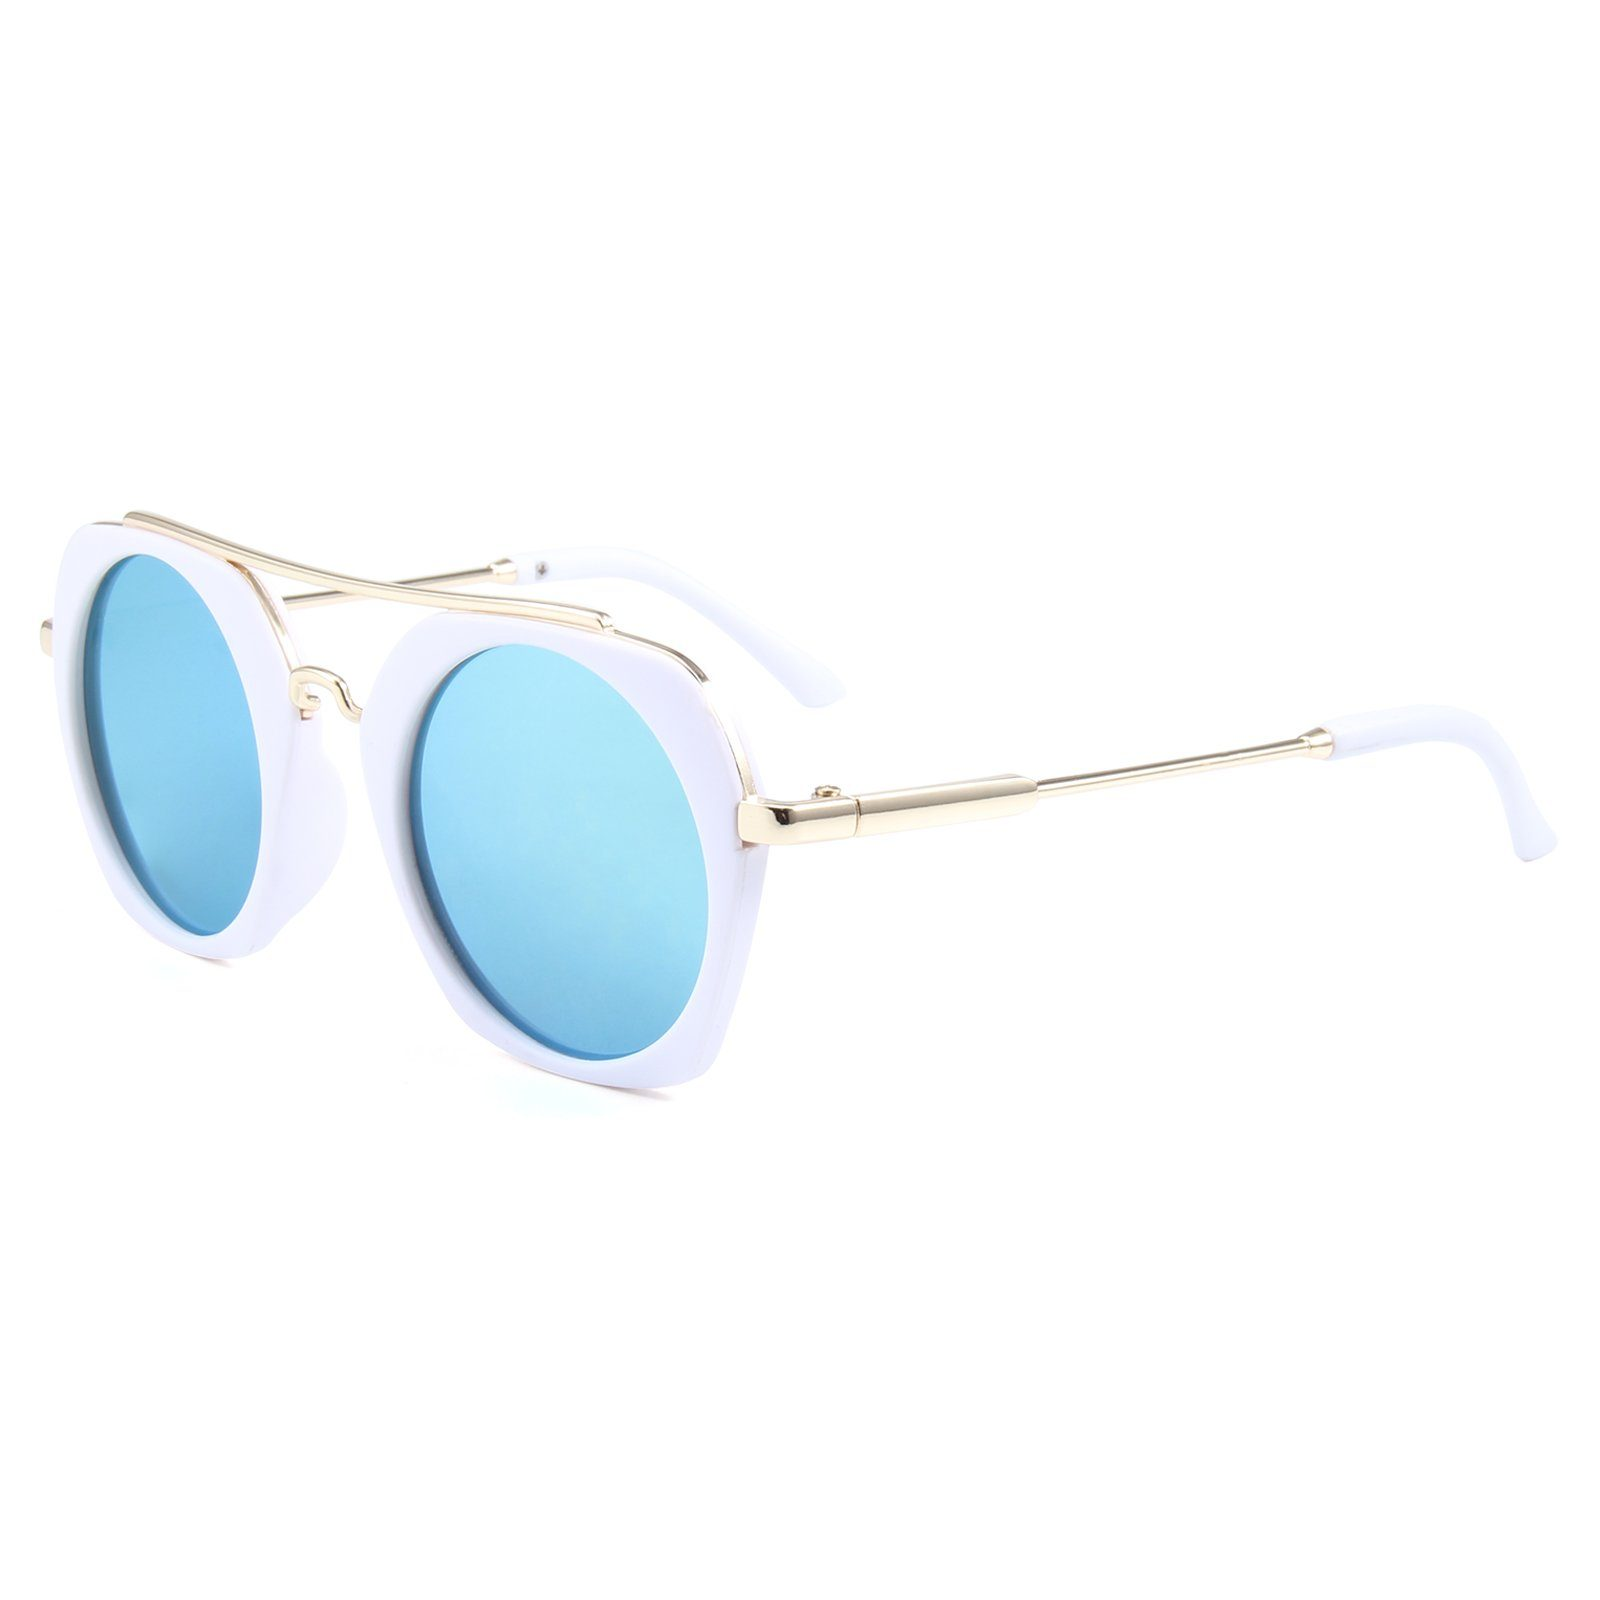 Sunset Sunglasses (White)